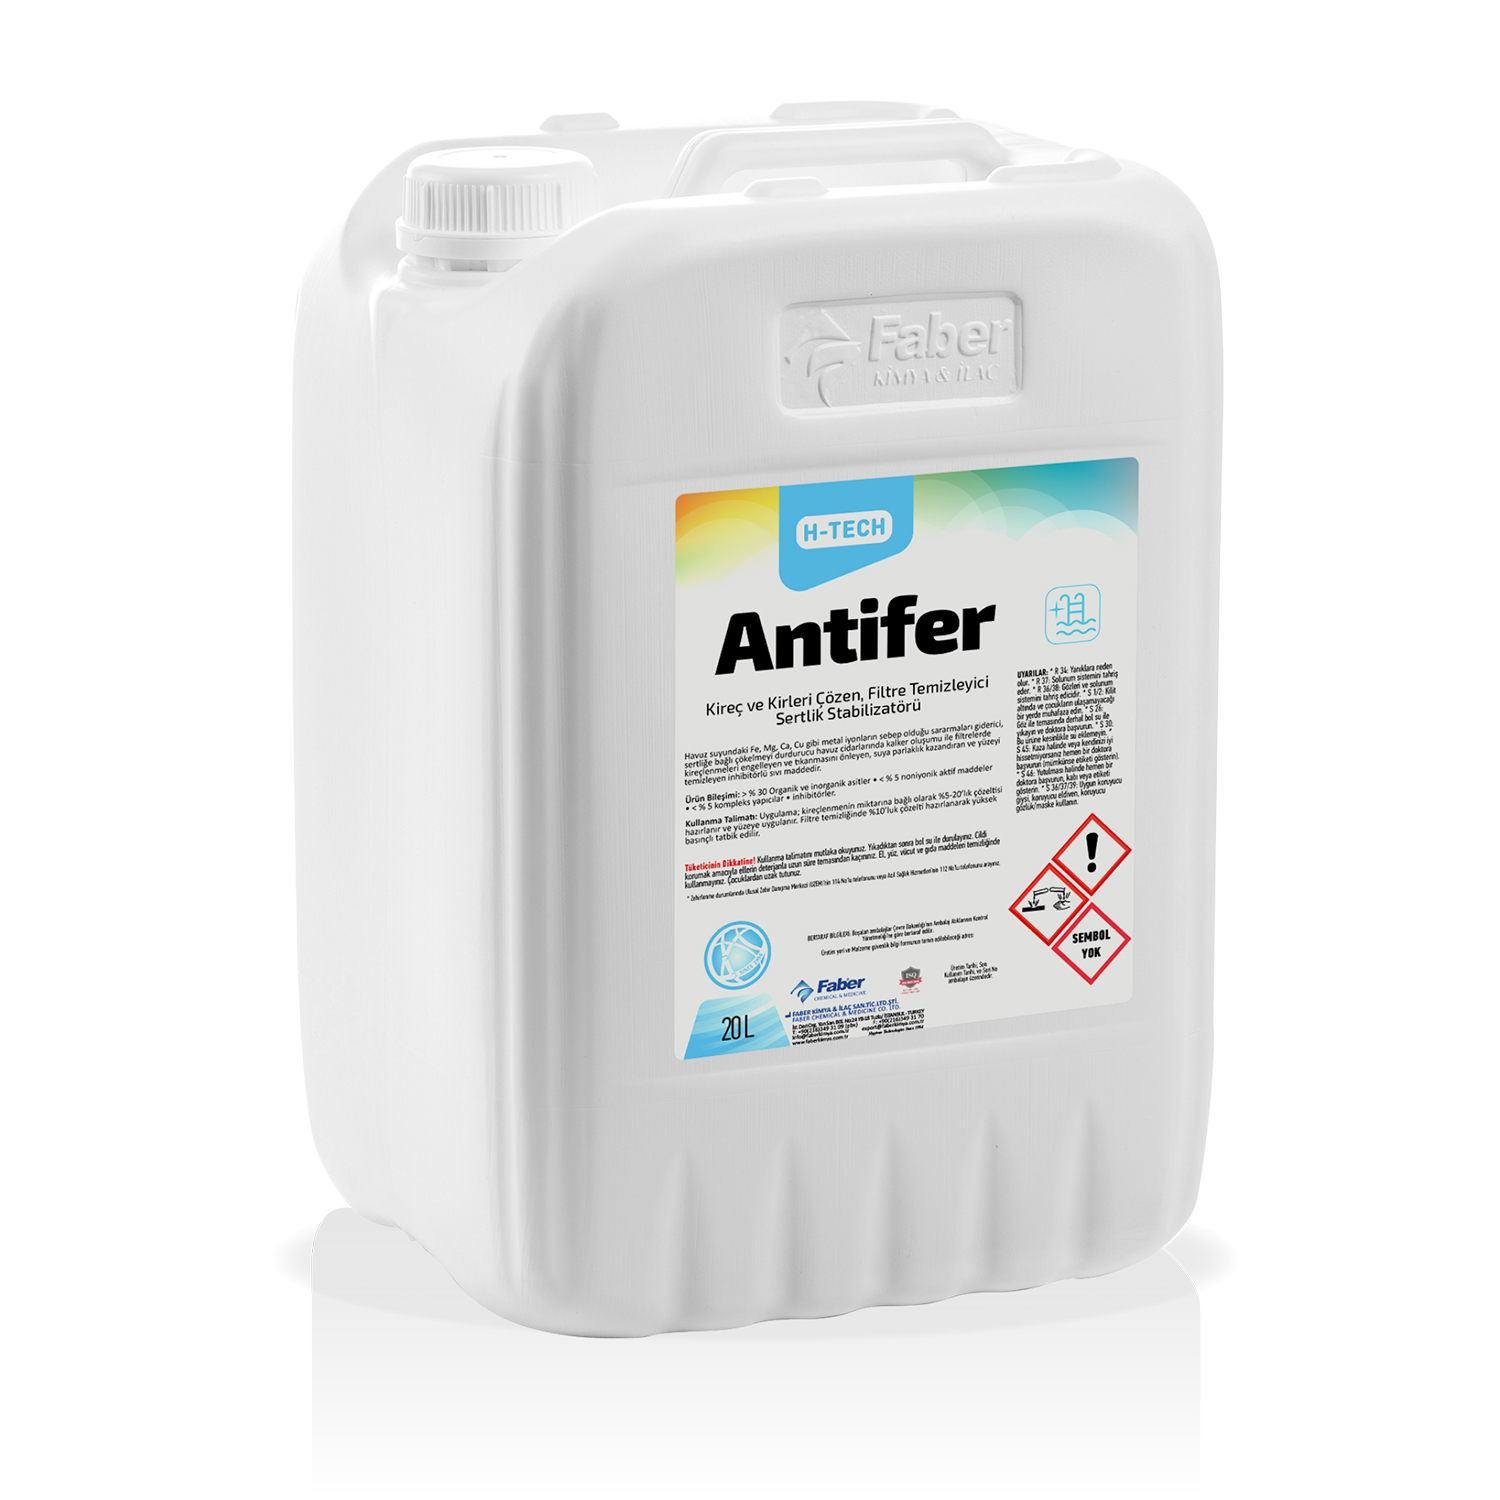 H-Tech Antifer